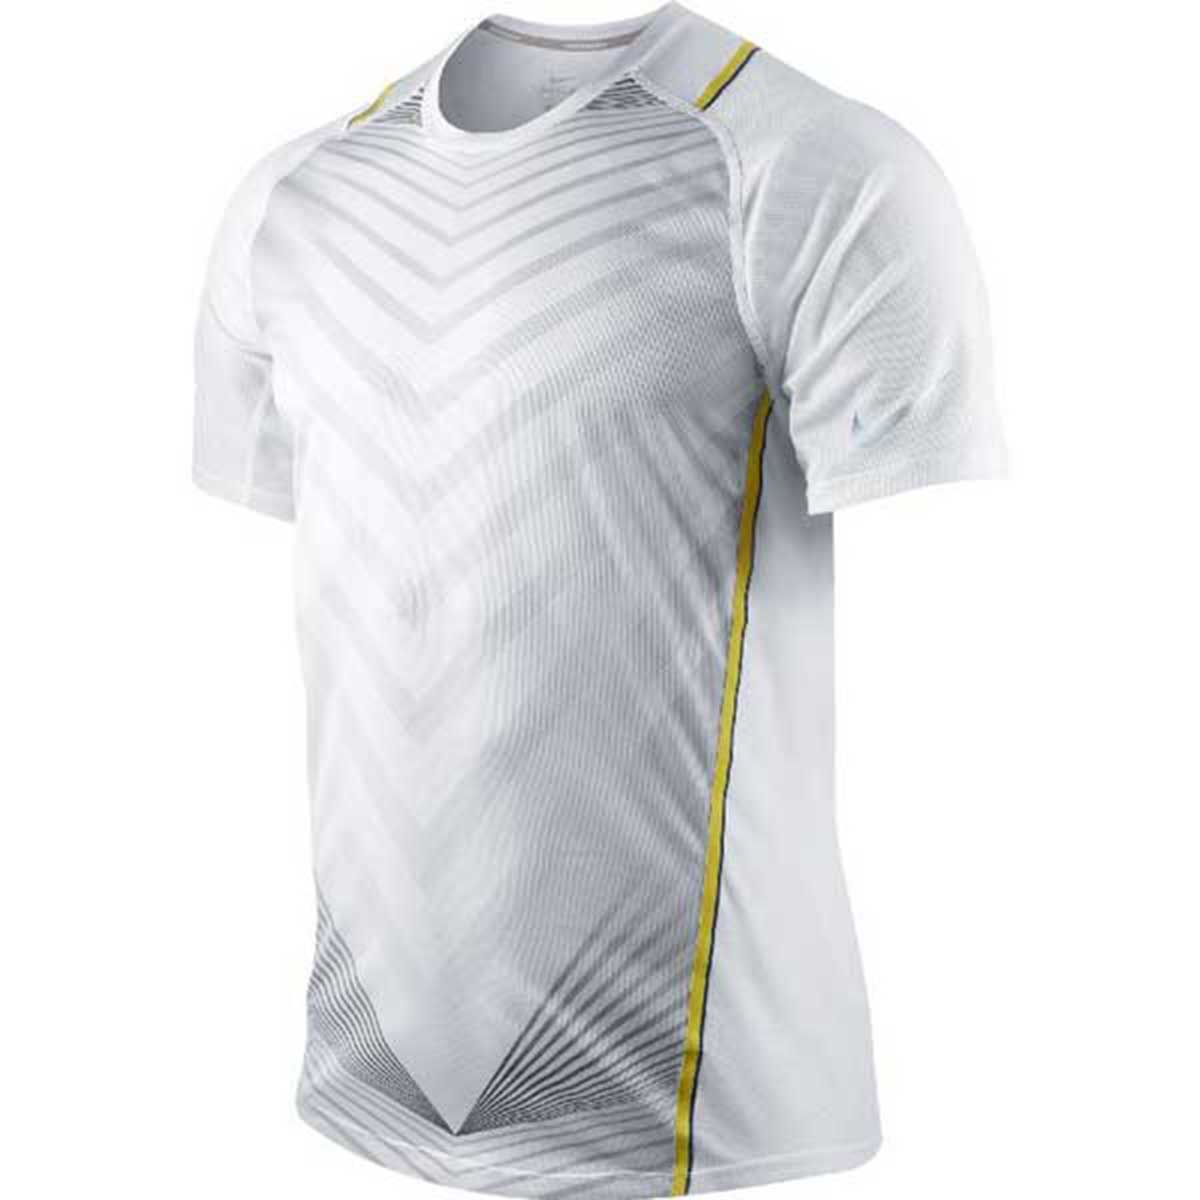 4da062eb8 Buy Nike Race Day Men s Running T-Shirt (White) Online India